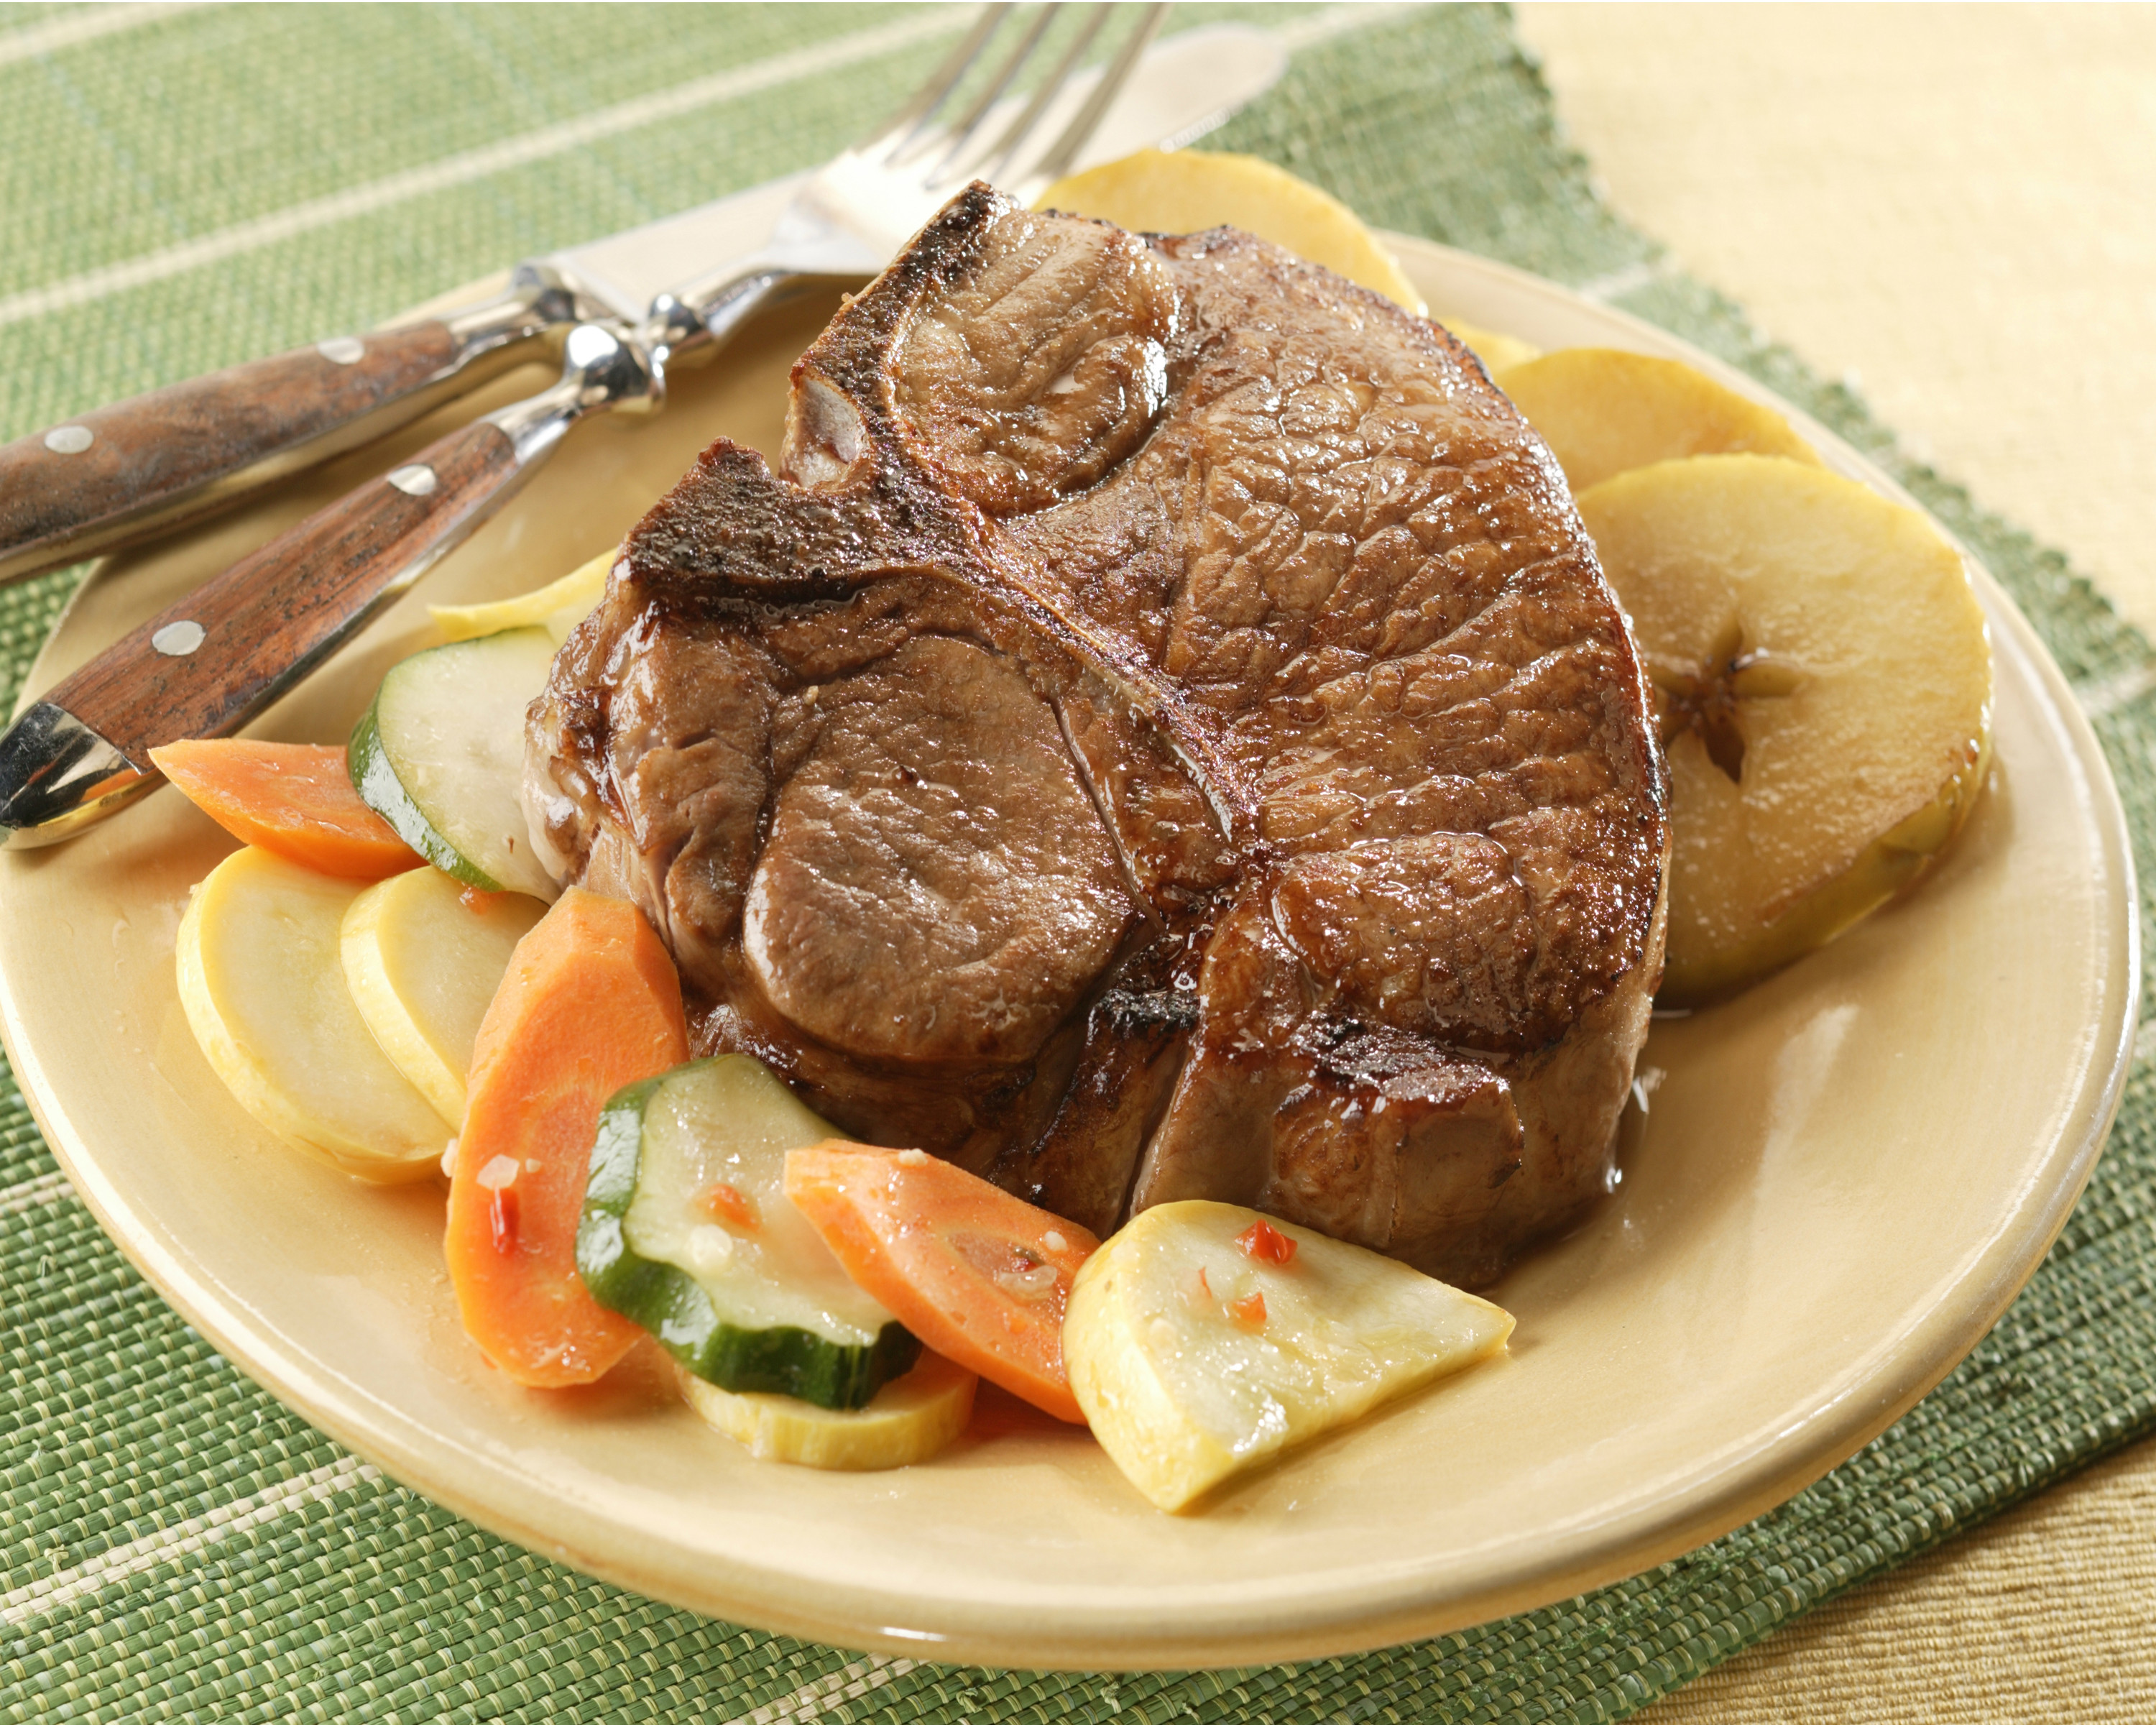 Broil Pork Chops  Broiled Pork Chops with Ve able Medley and Cinnamon